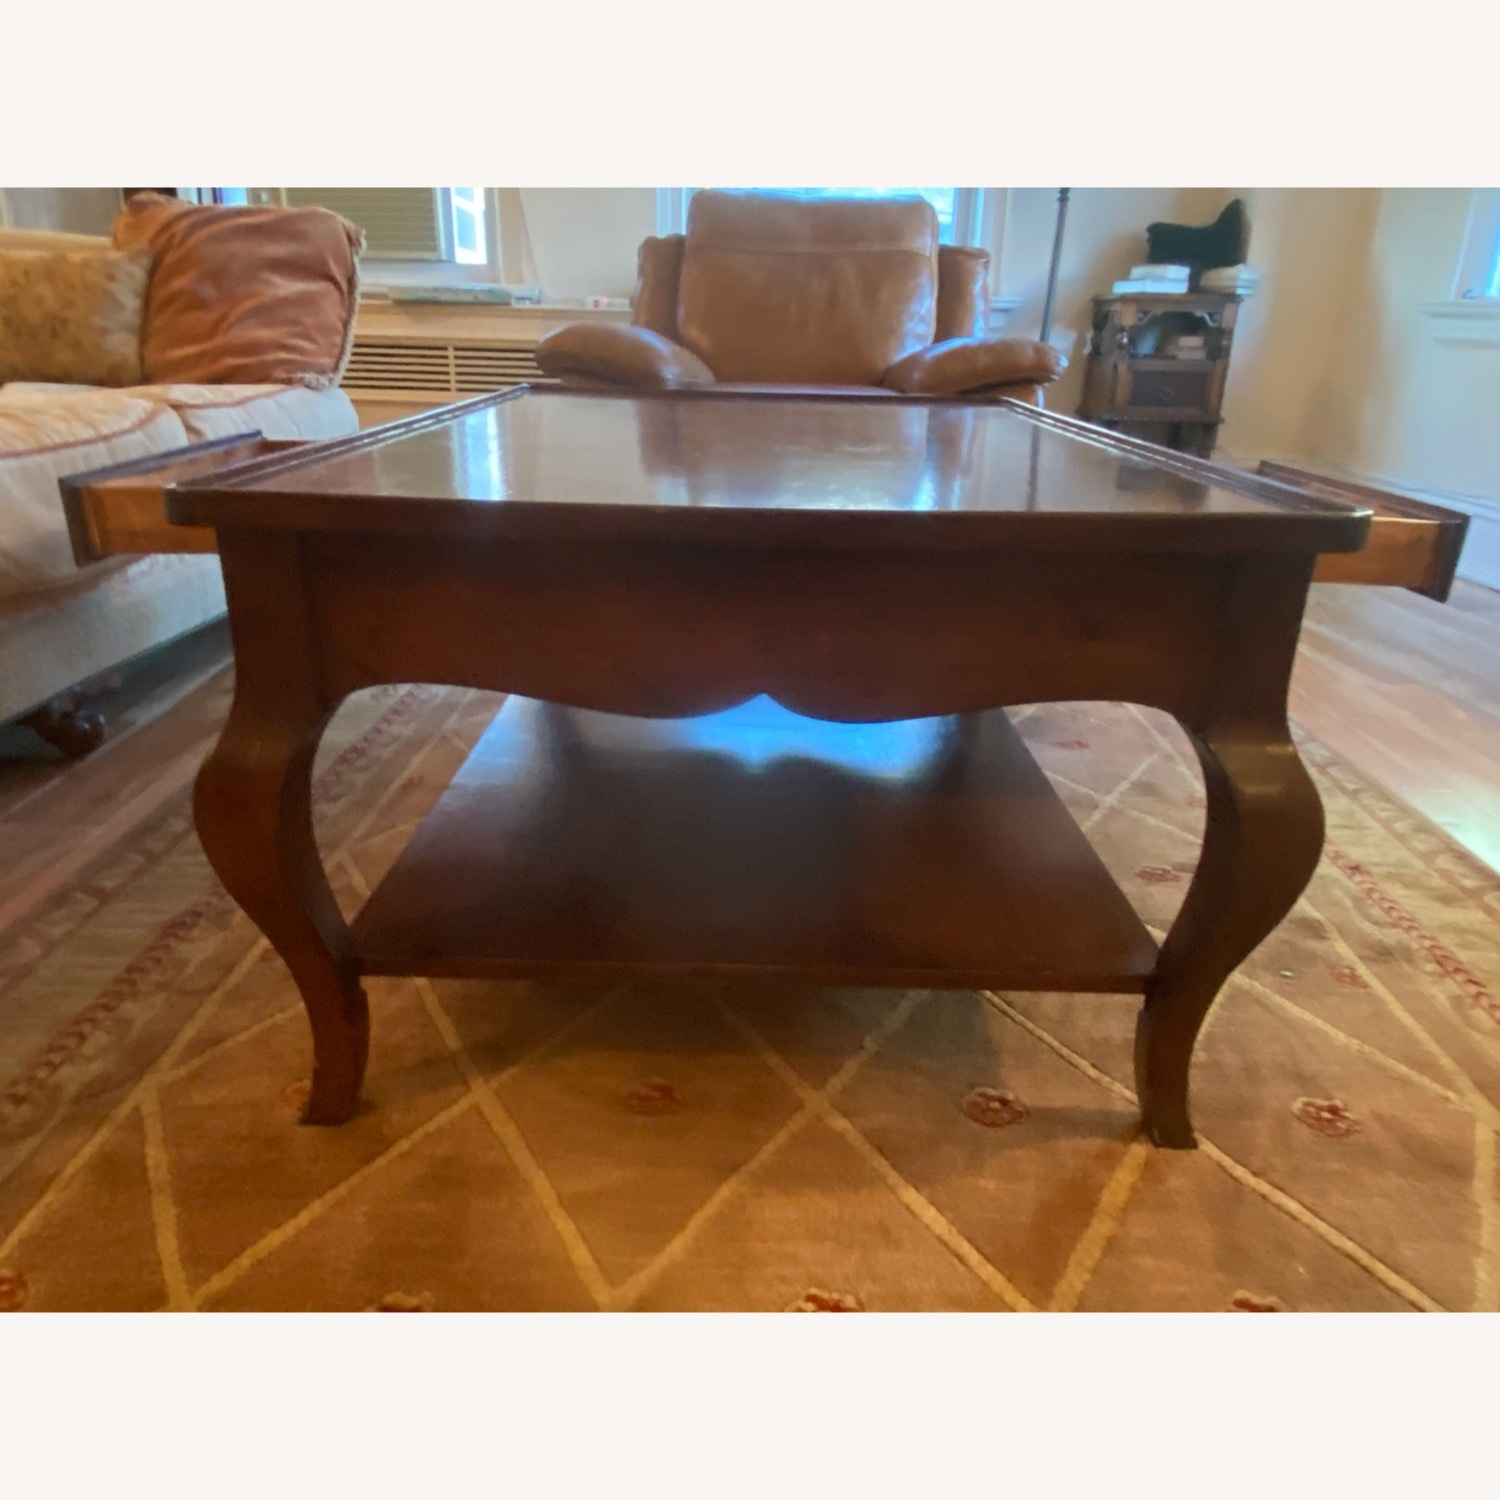 Domain Furniture Solid Wood Double Drawer Coffee Table - image-2